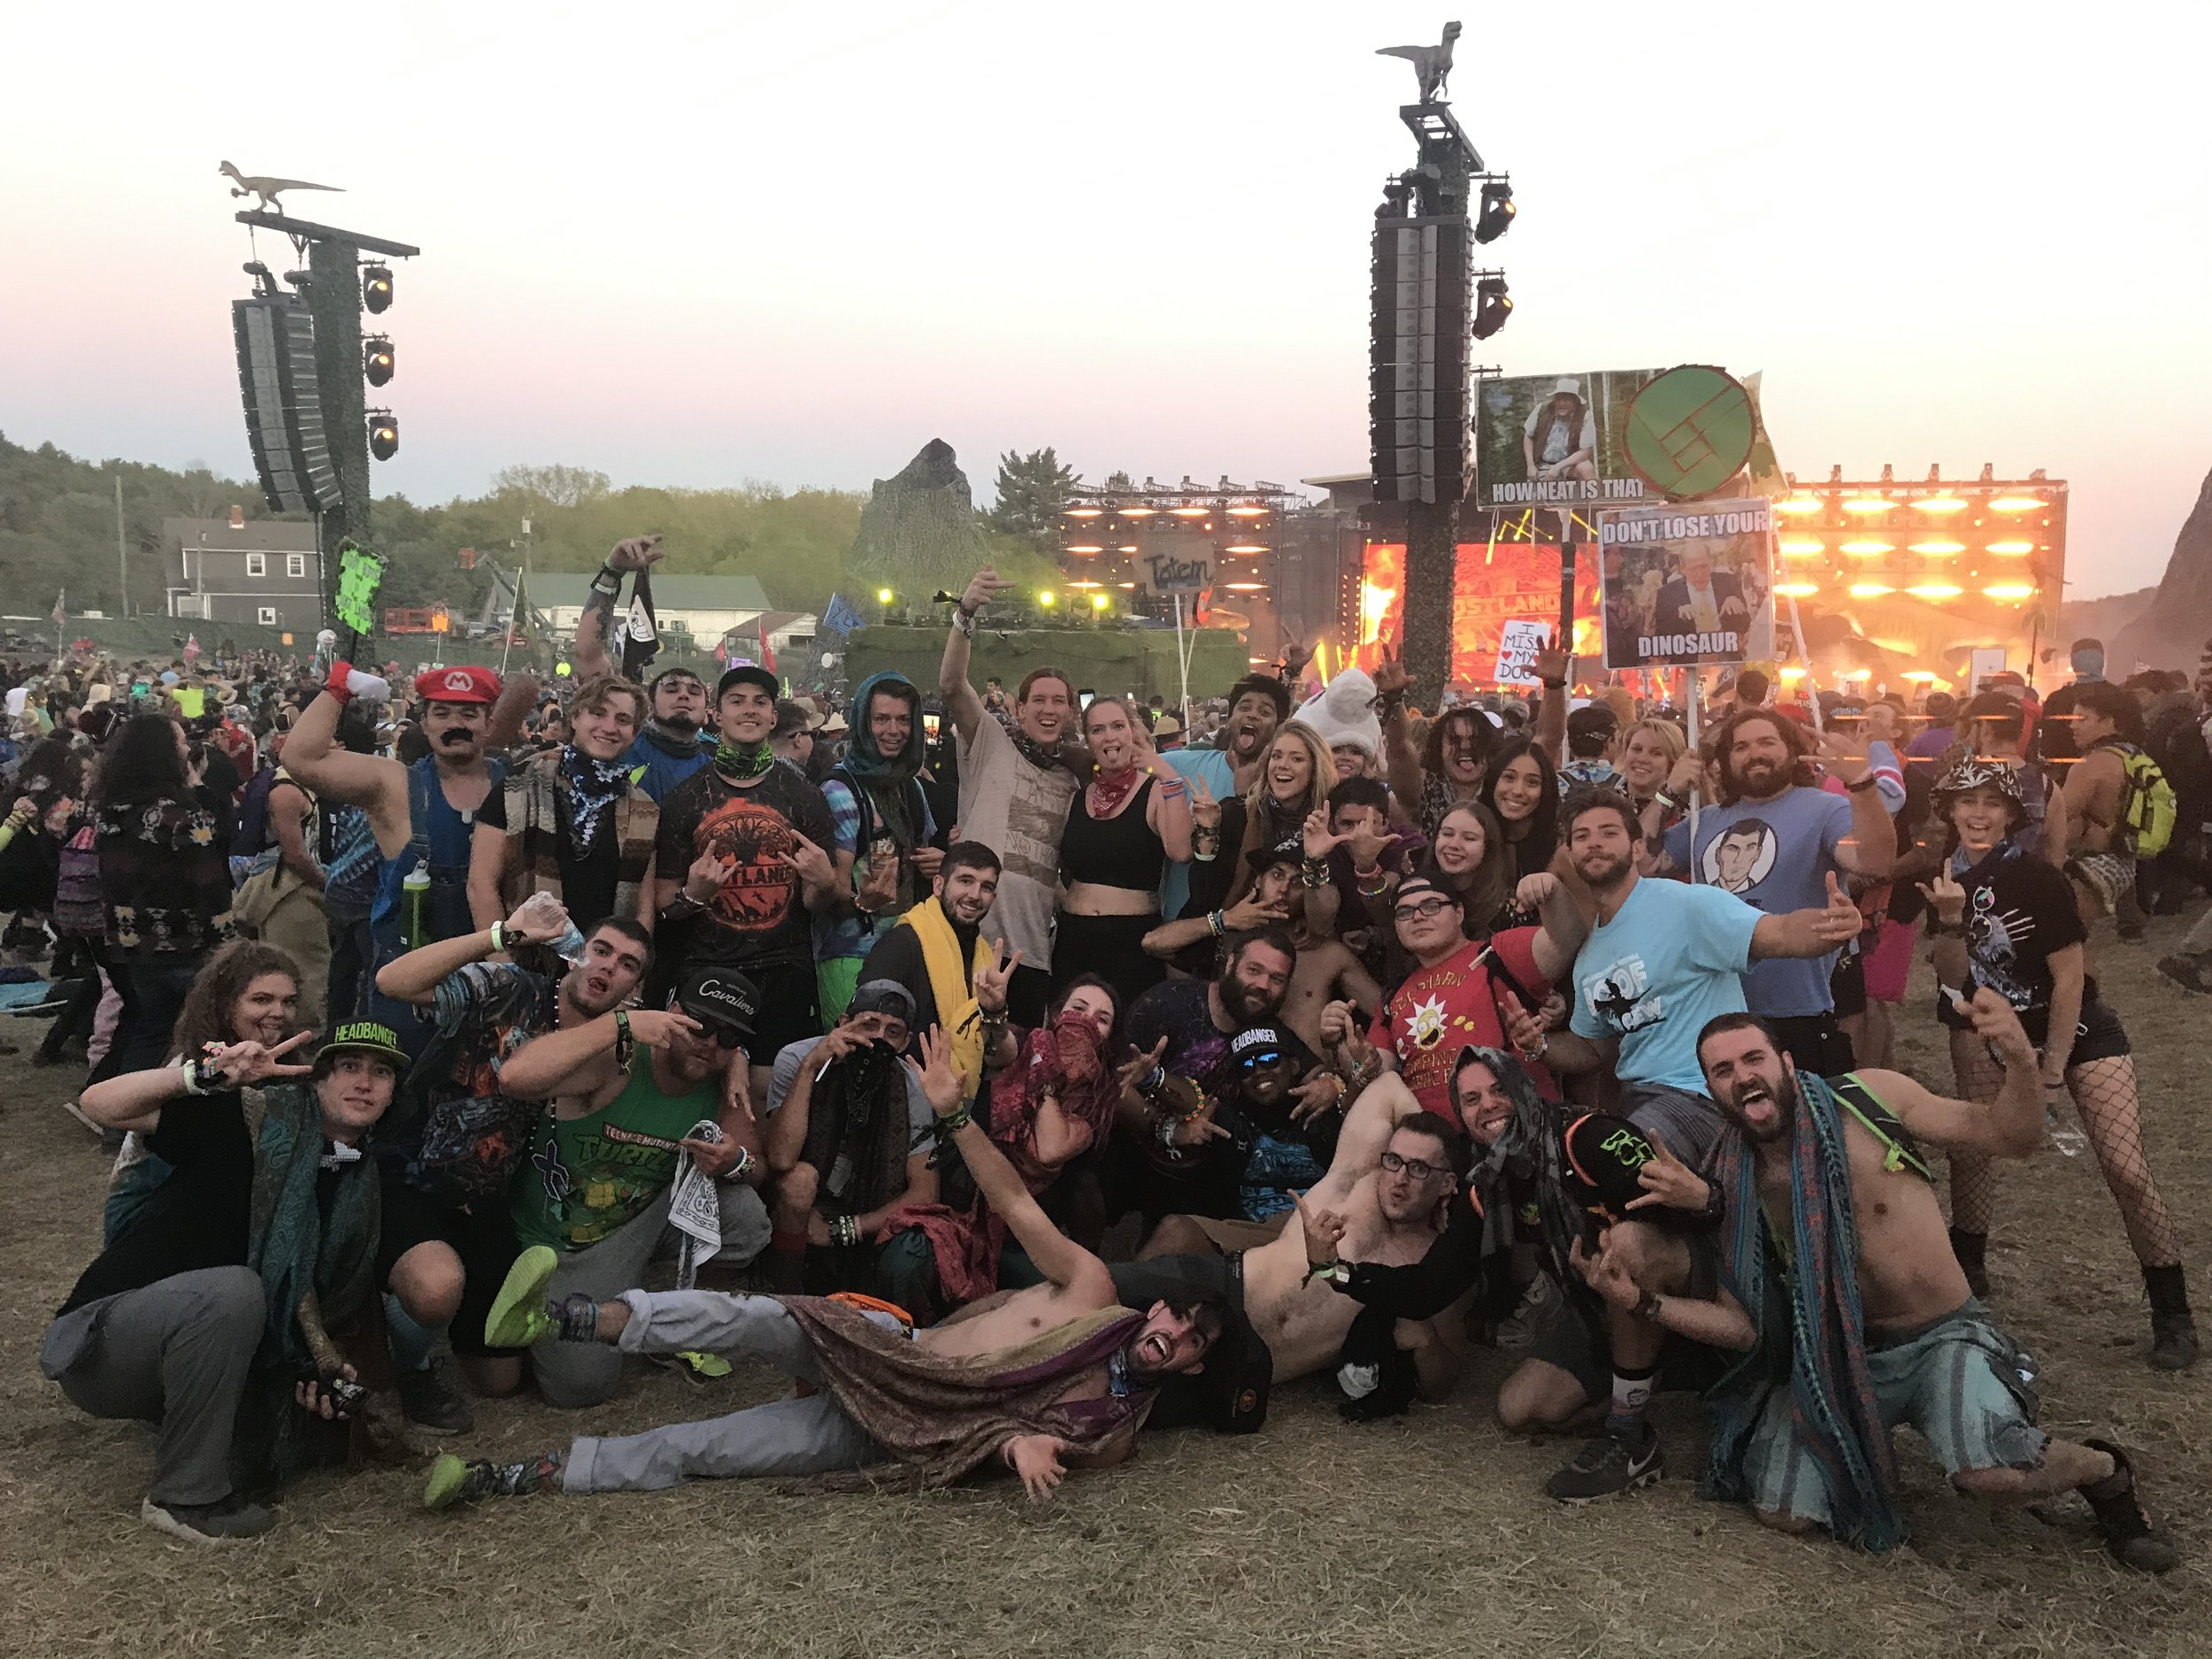 A group photo of most of our group in front of the Paradox stage.